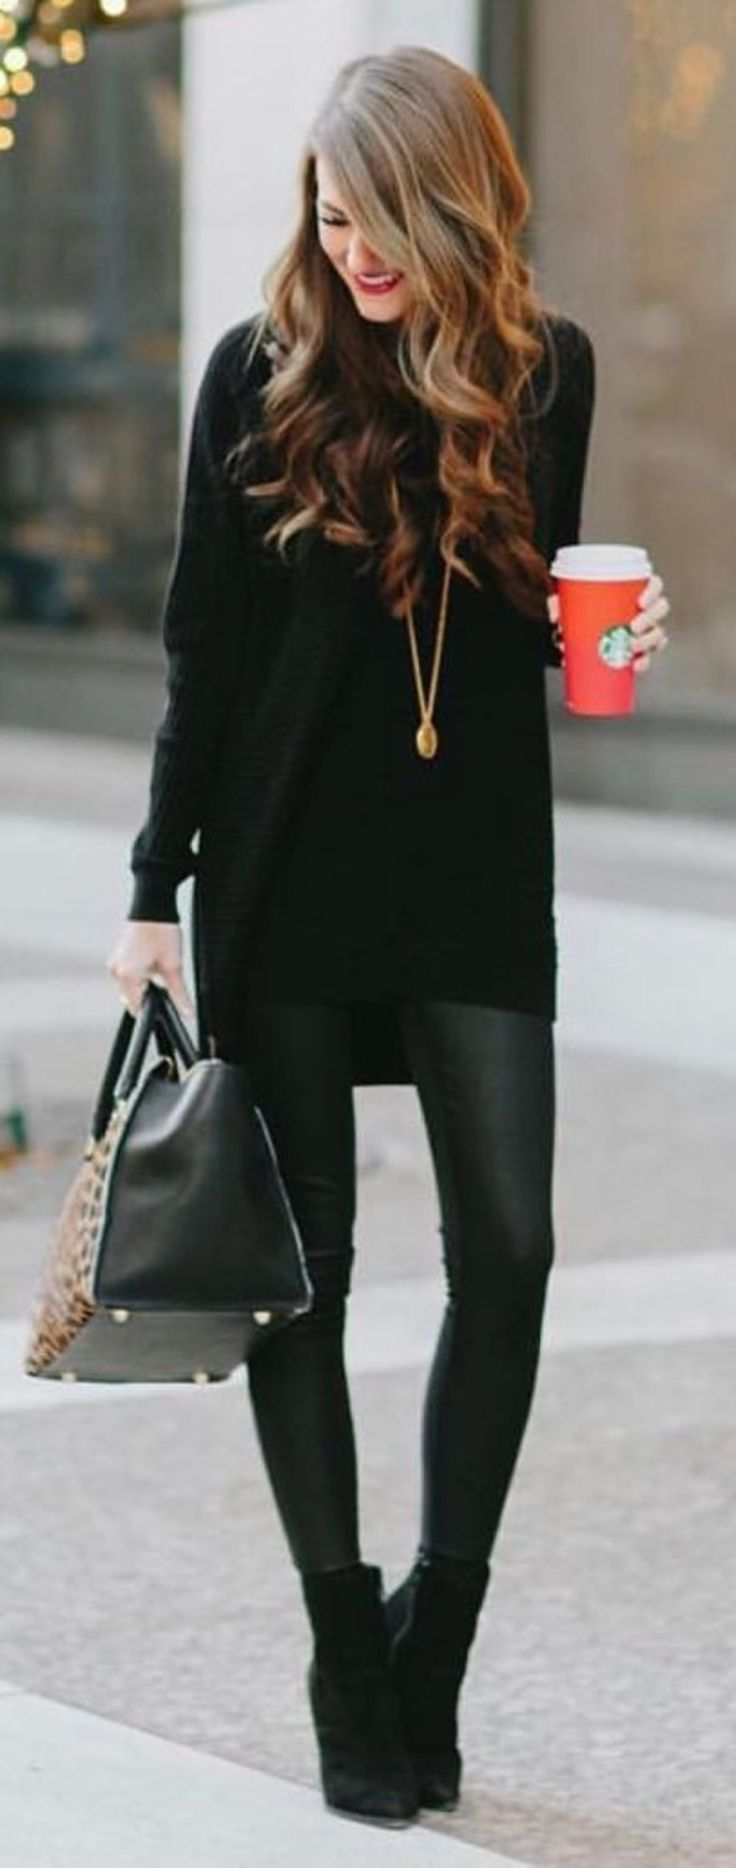 Breathtaking 35 Insanely Cool Winter Outfits Ideas from https://www.fashionetter.com/2017/07/28/35-insanely-cool-winter-outfits-ideas/